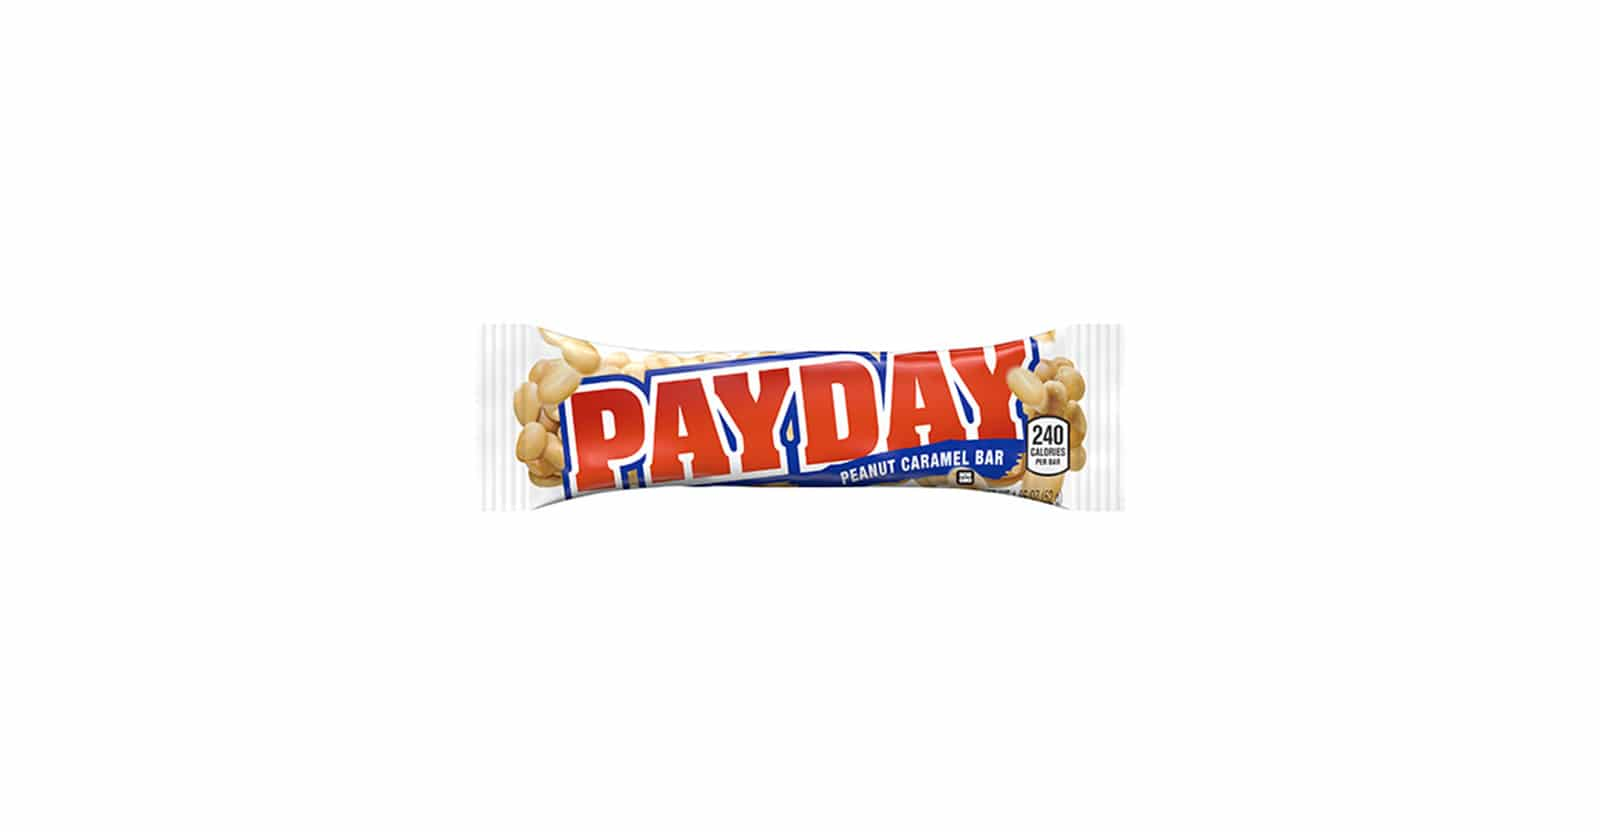 are payday candy bars gluten-free